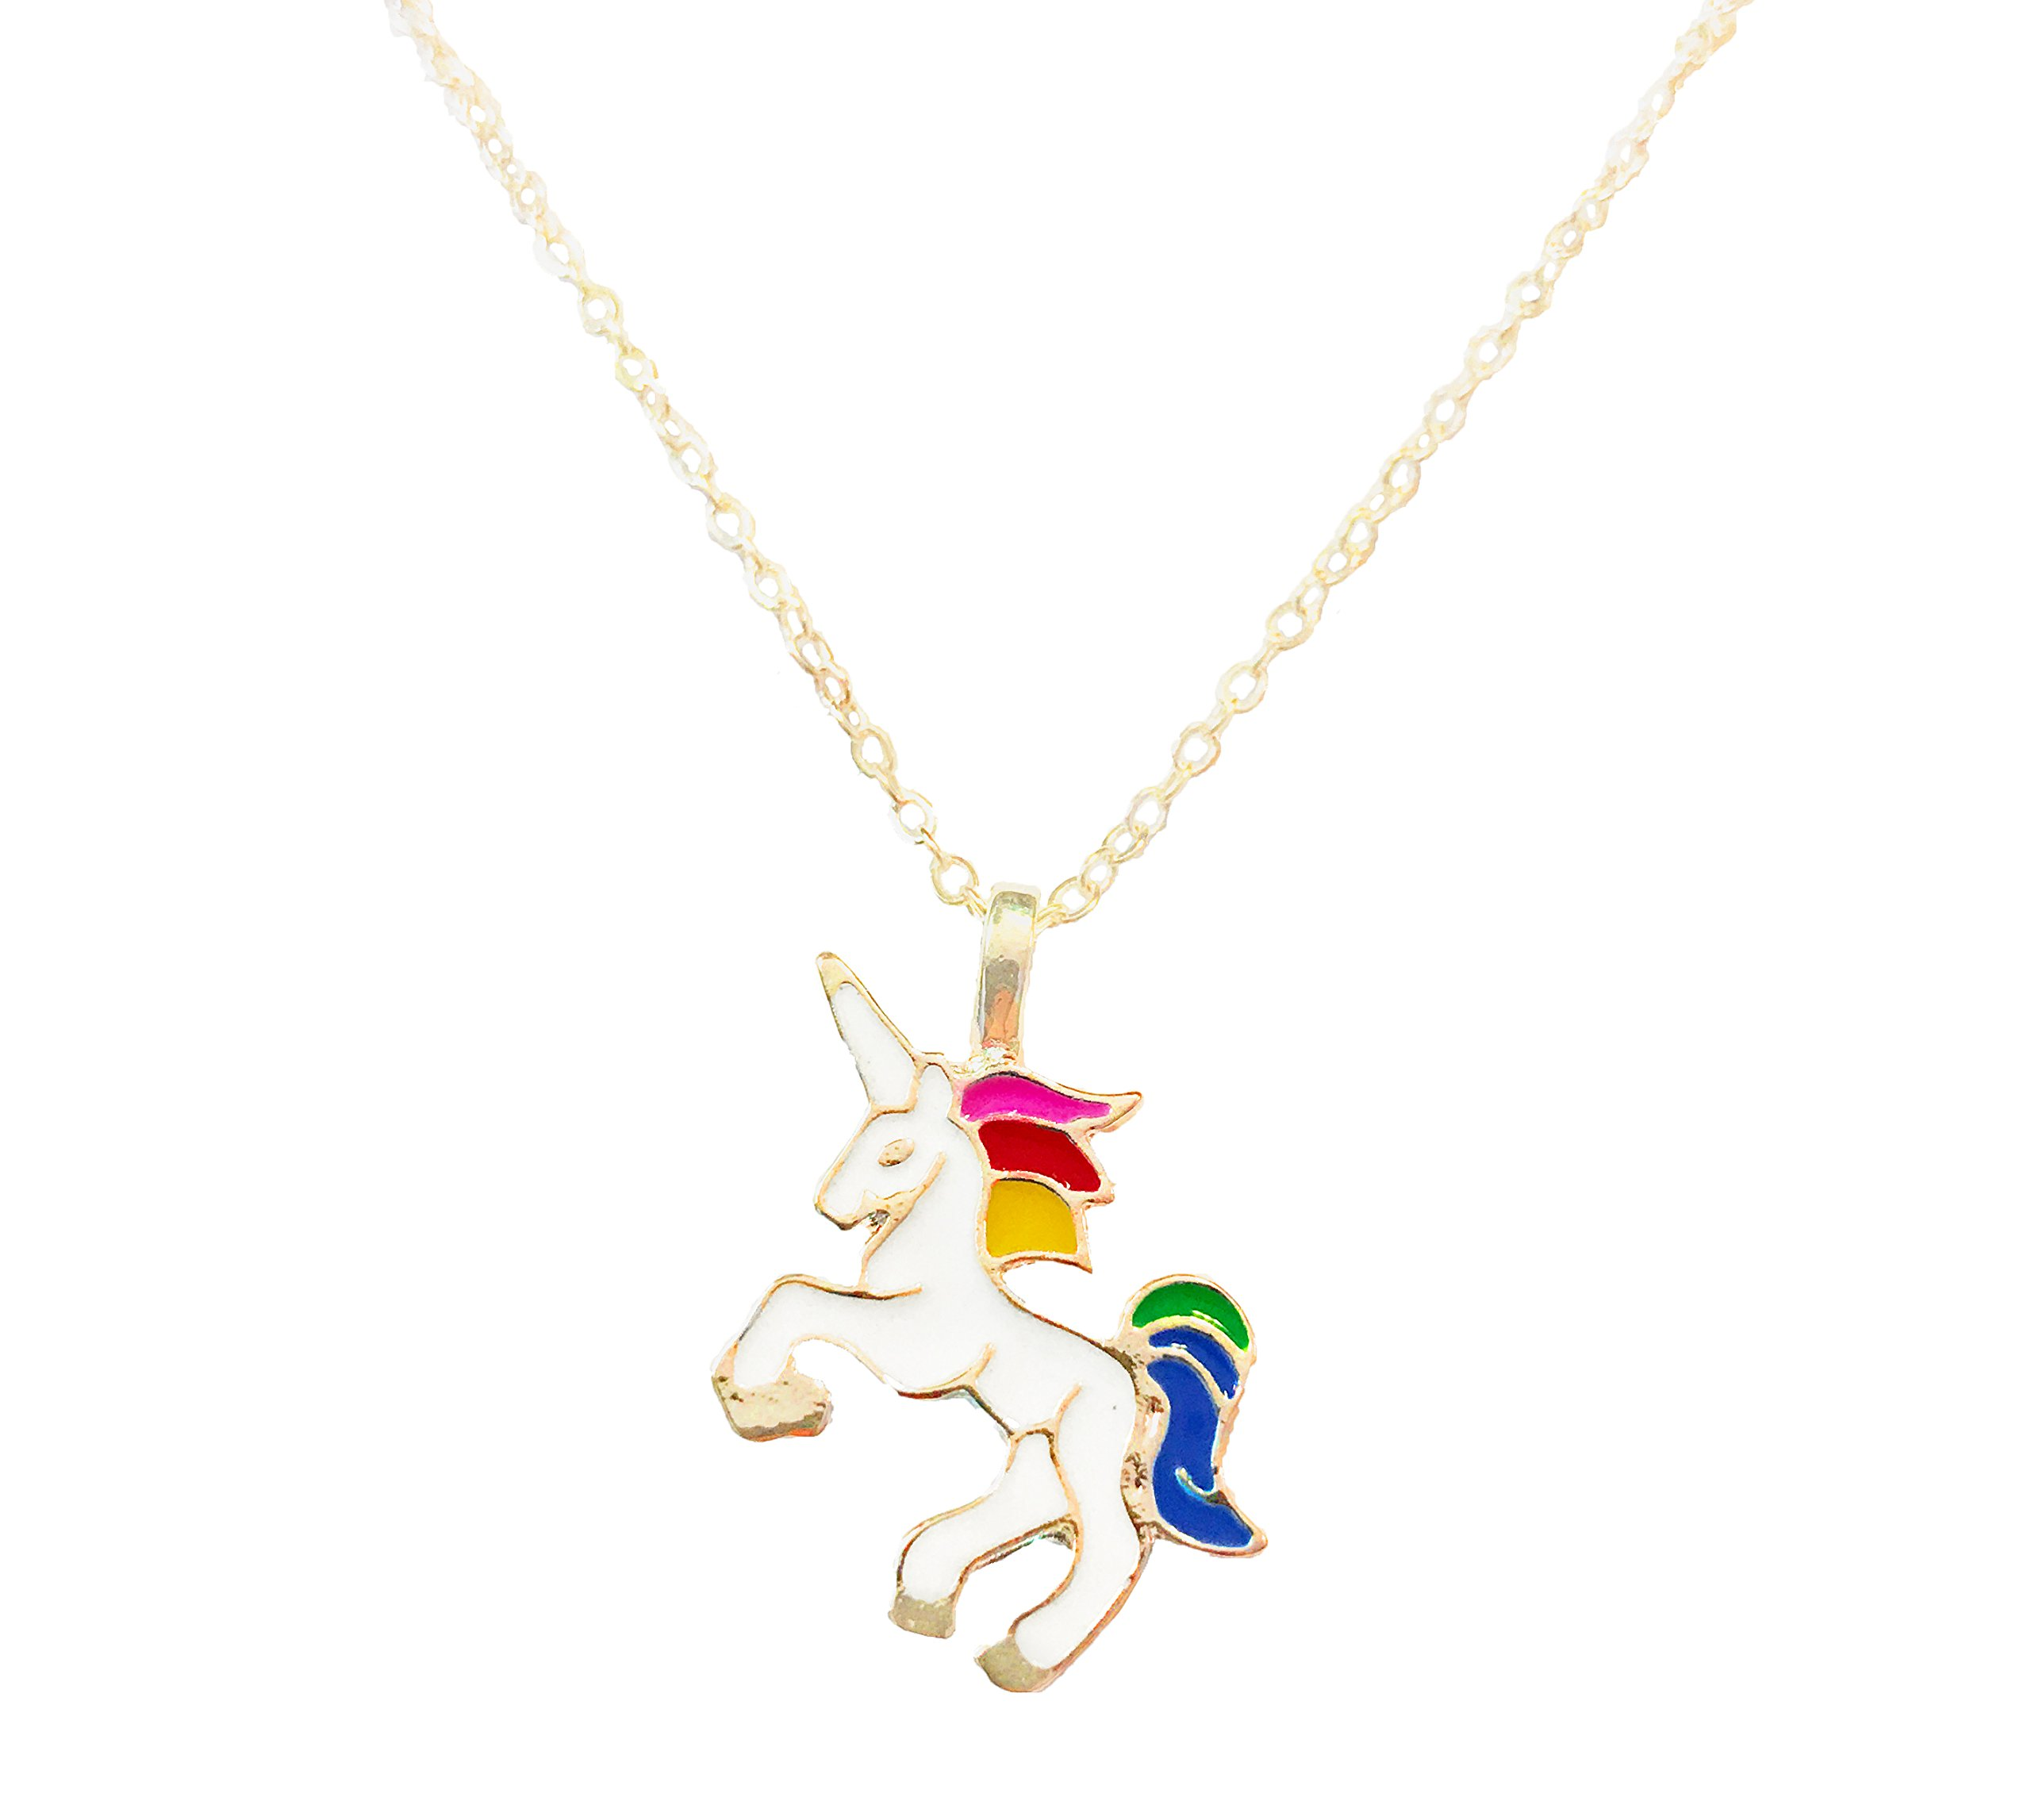 Altitude Boutique Unicorn Necklace Magical Pendant Gift for Girls or for Women Gold Silver Colorful Enamel 3